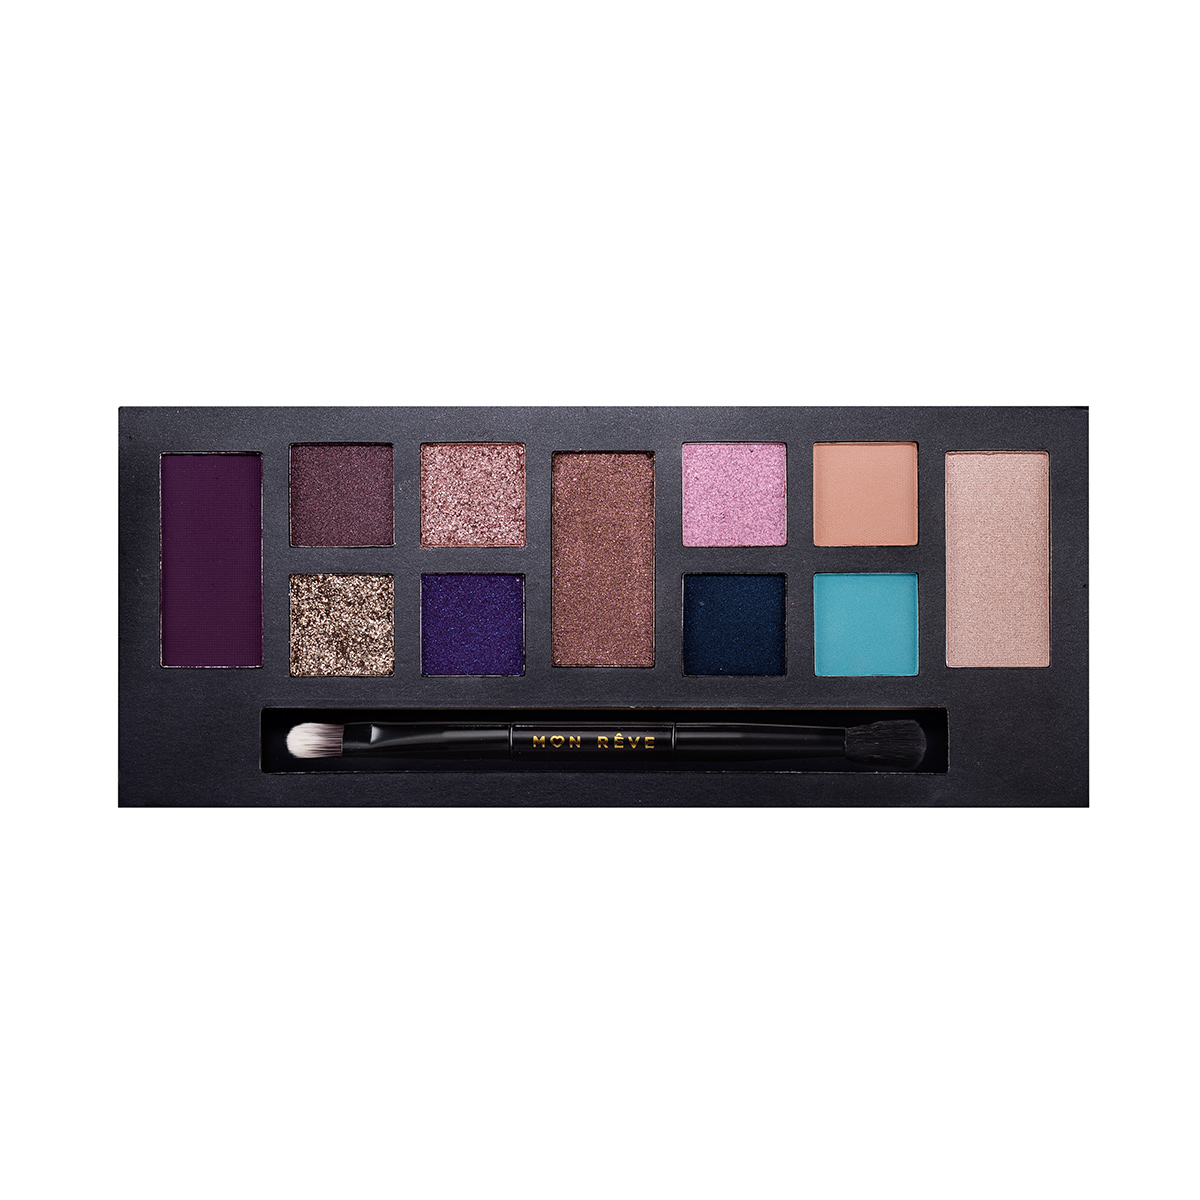 02 JEWEL BOX PALETTE